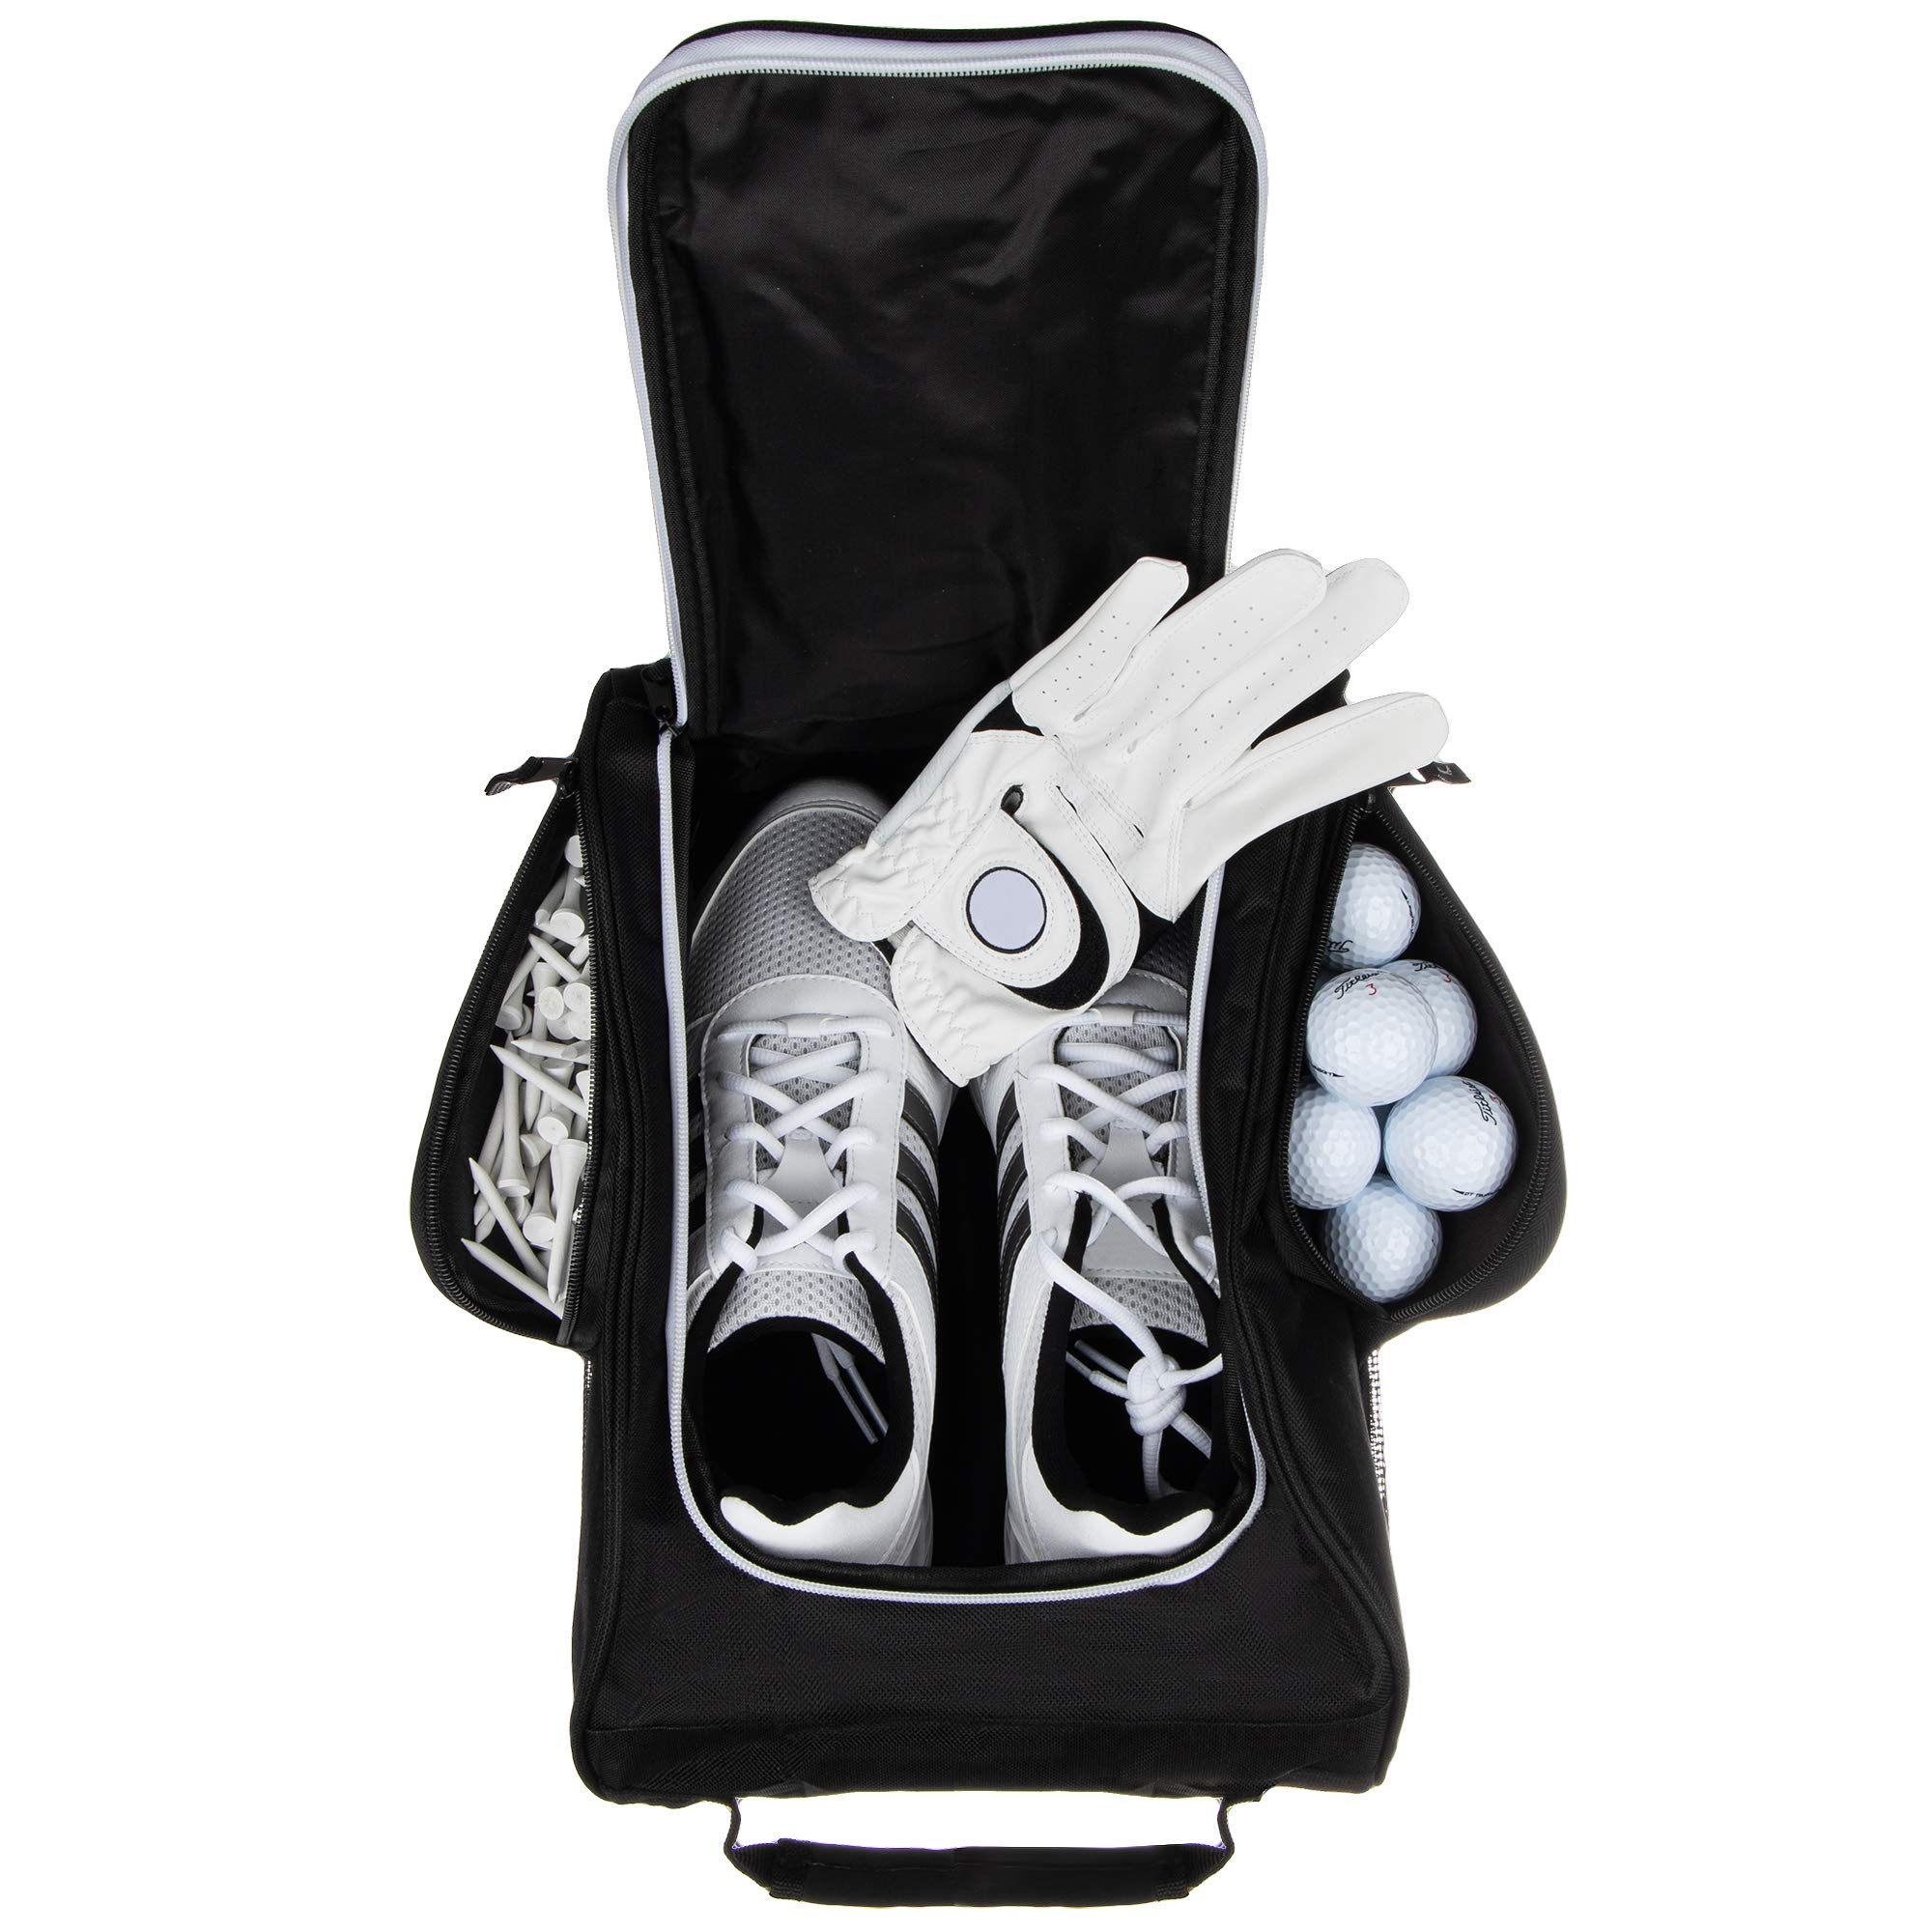 Stripe Golf Shoe Bag - Zipper Shoe Carrier Tote Bag with Mesh Ventilation - Side Pockets for Golf Balls, Tees and Other Accessories by Stripe Golf